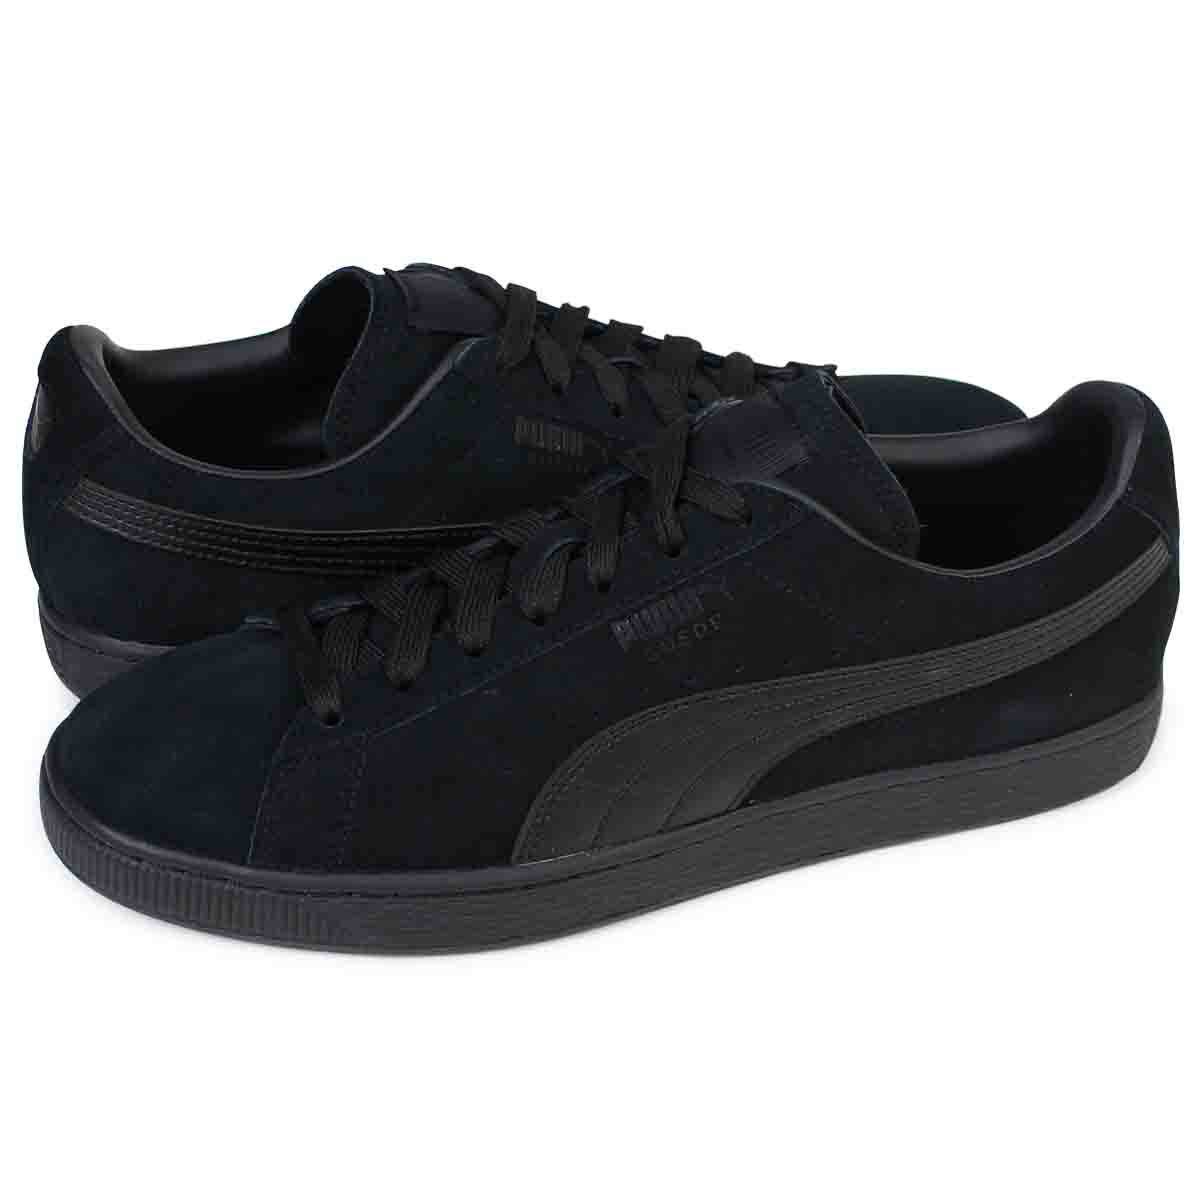 pick up 8c15a 2ce7d PUMA SUEDE CLASSIC + LFS Puma suede classical music sneakers 356,328-01  men's shoes black [load planned Shinnyu load in reservation product 12/14  ...